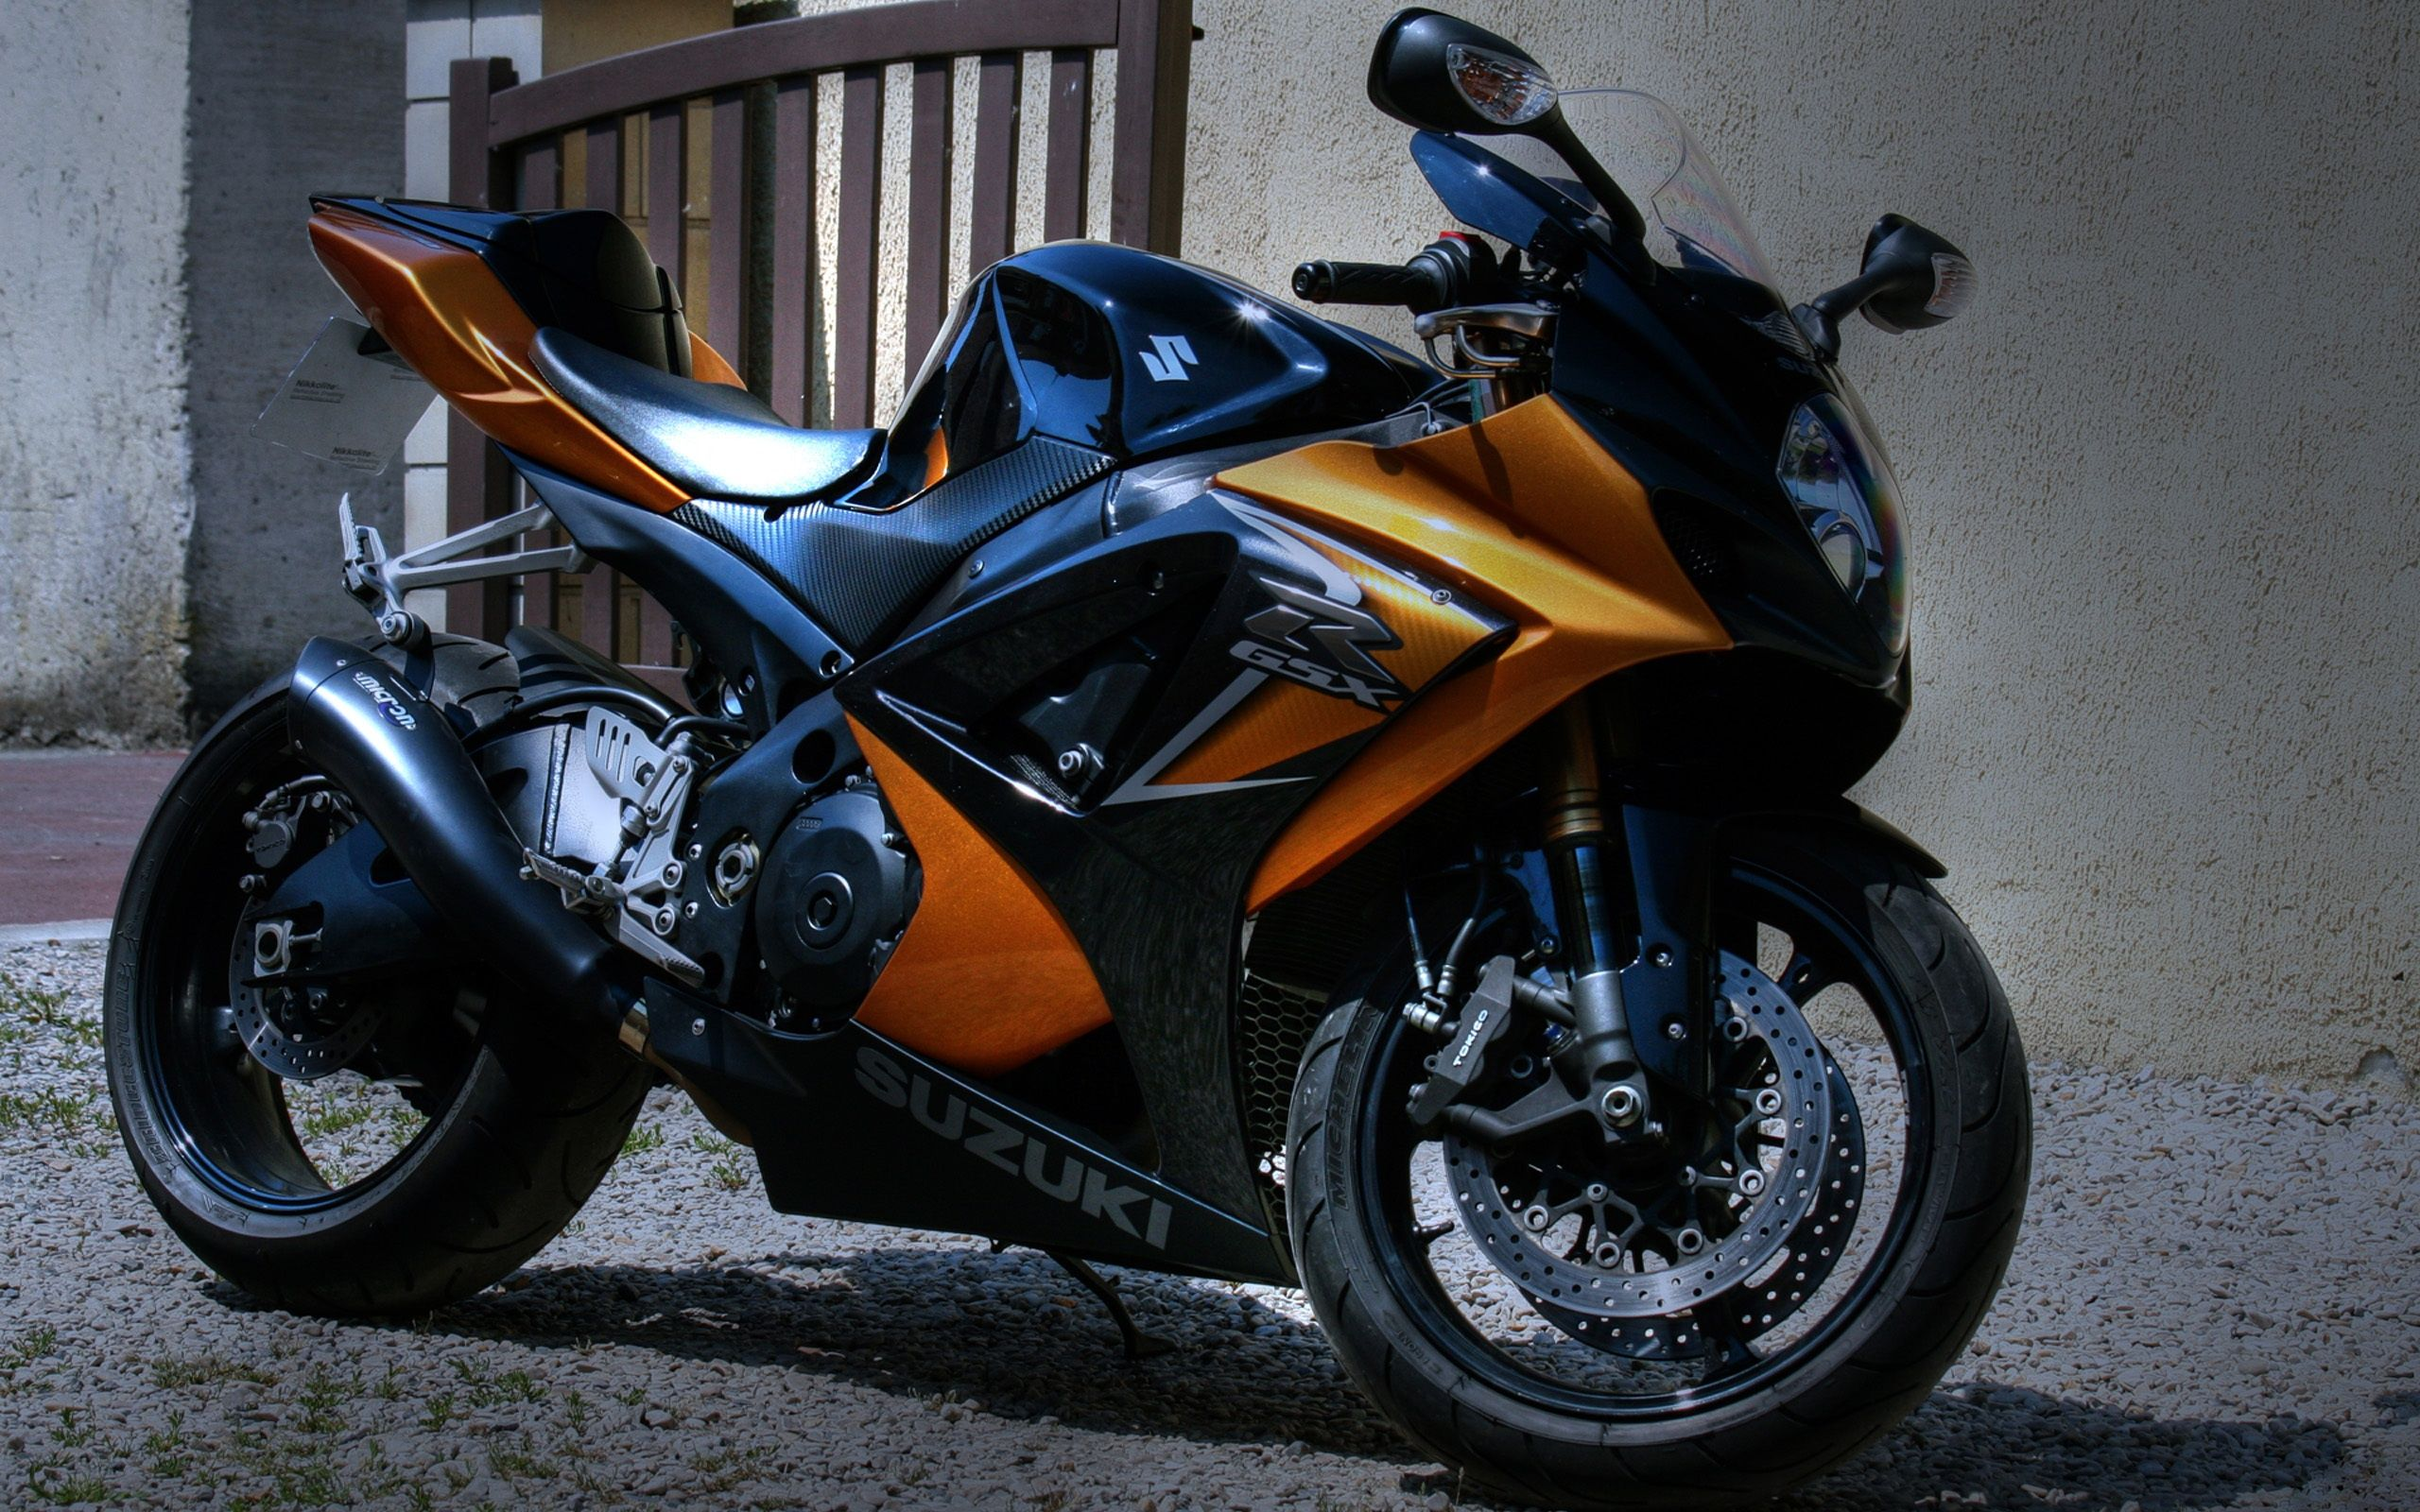 Suzuki Motorcycle Parked Outside The House Wallpaper 2560x1600